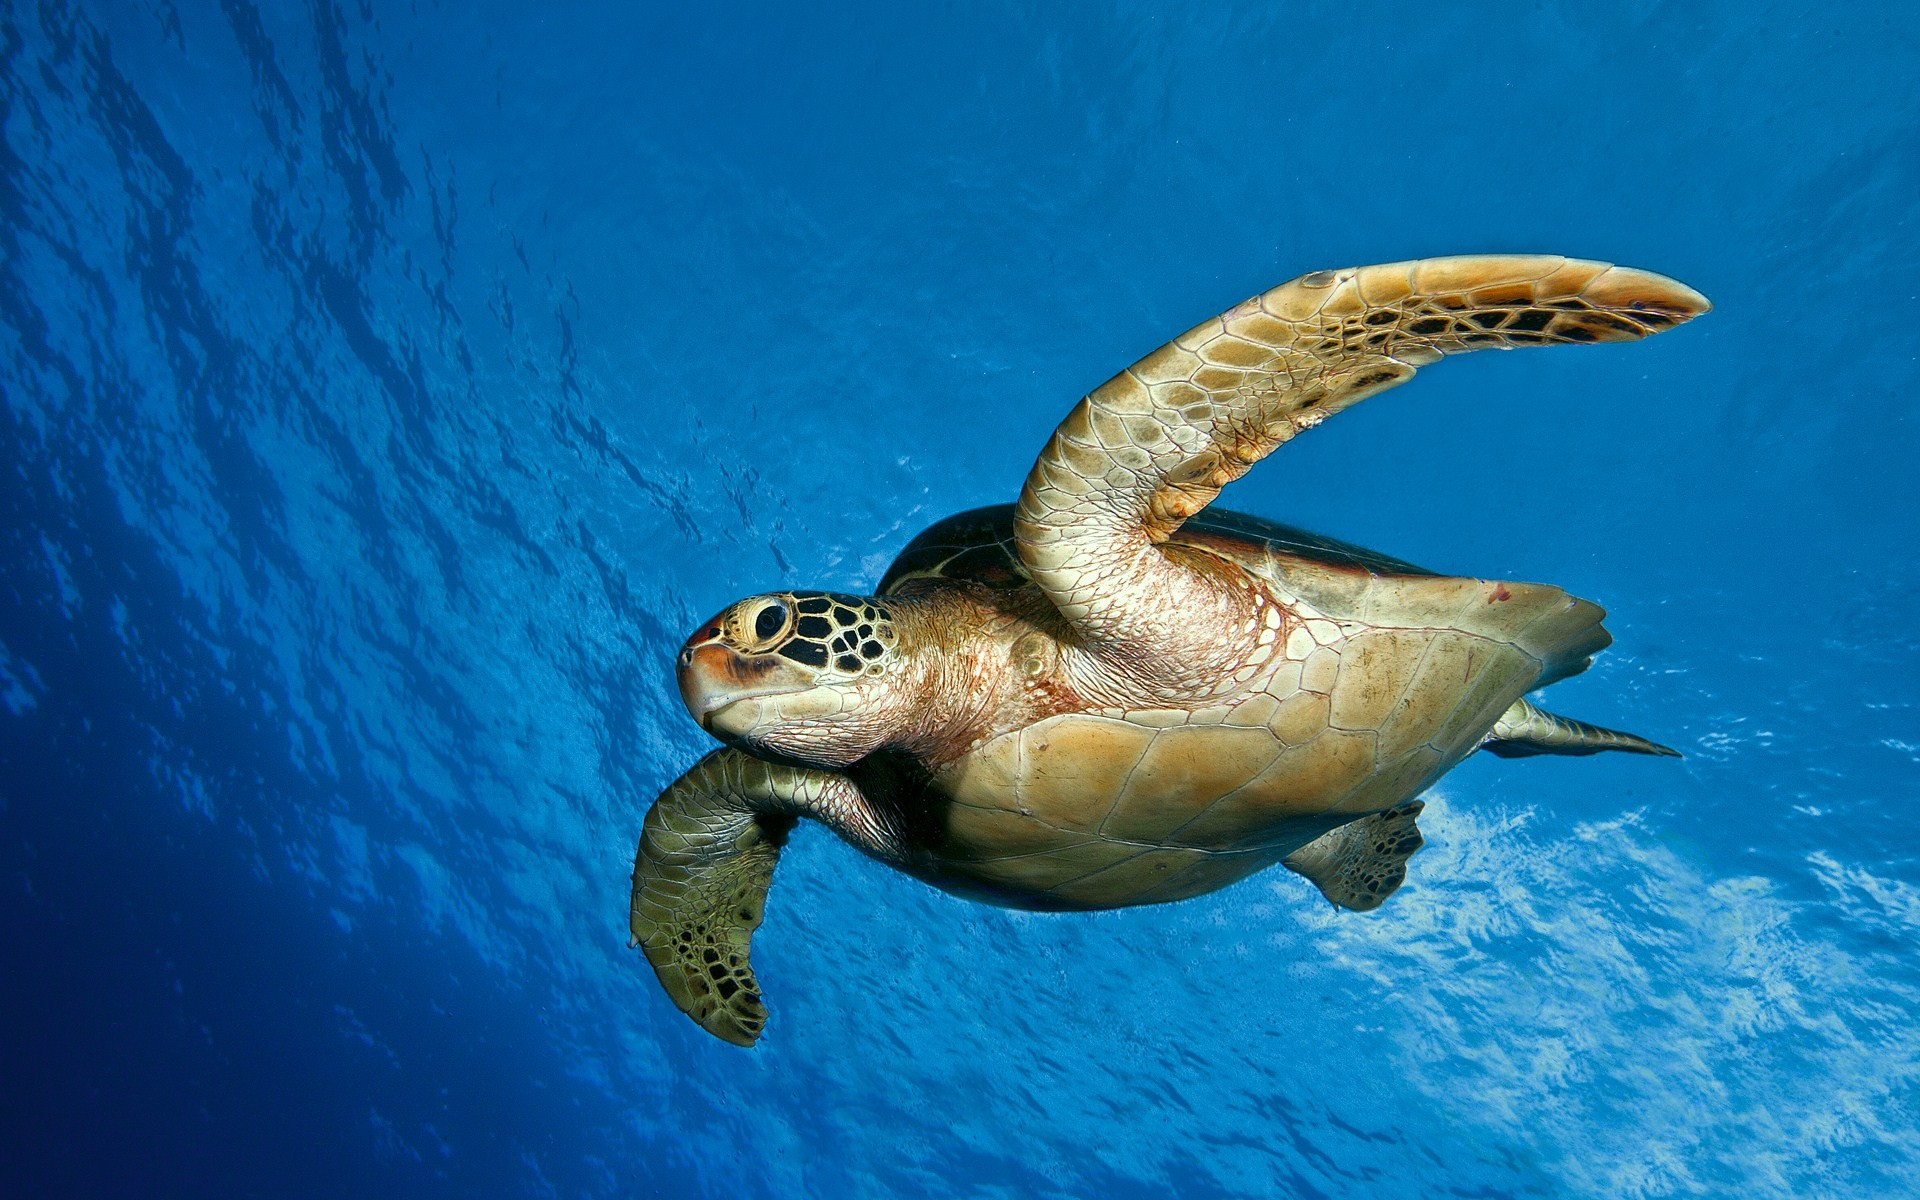 For many turtle species, the temperature in the nest determines the gender of the hatch-lings: warmer areas result in females, cooler areas result in males.